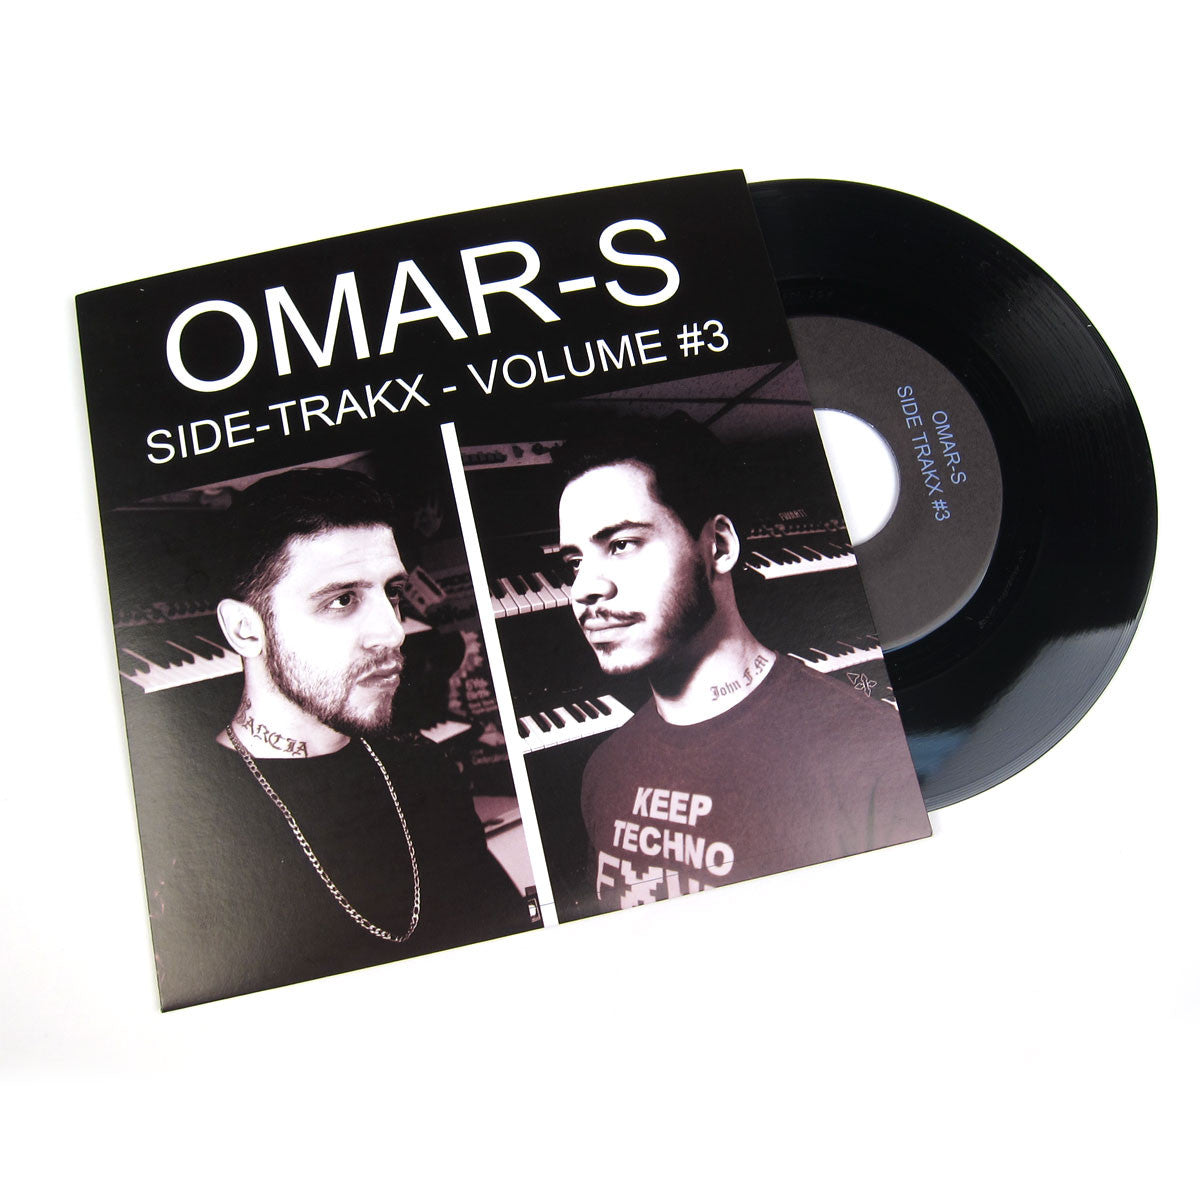 Omar-S: Side Trakx Volume #3 Vinyl 7""